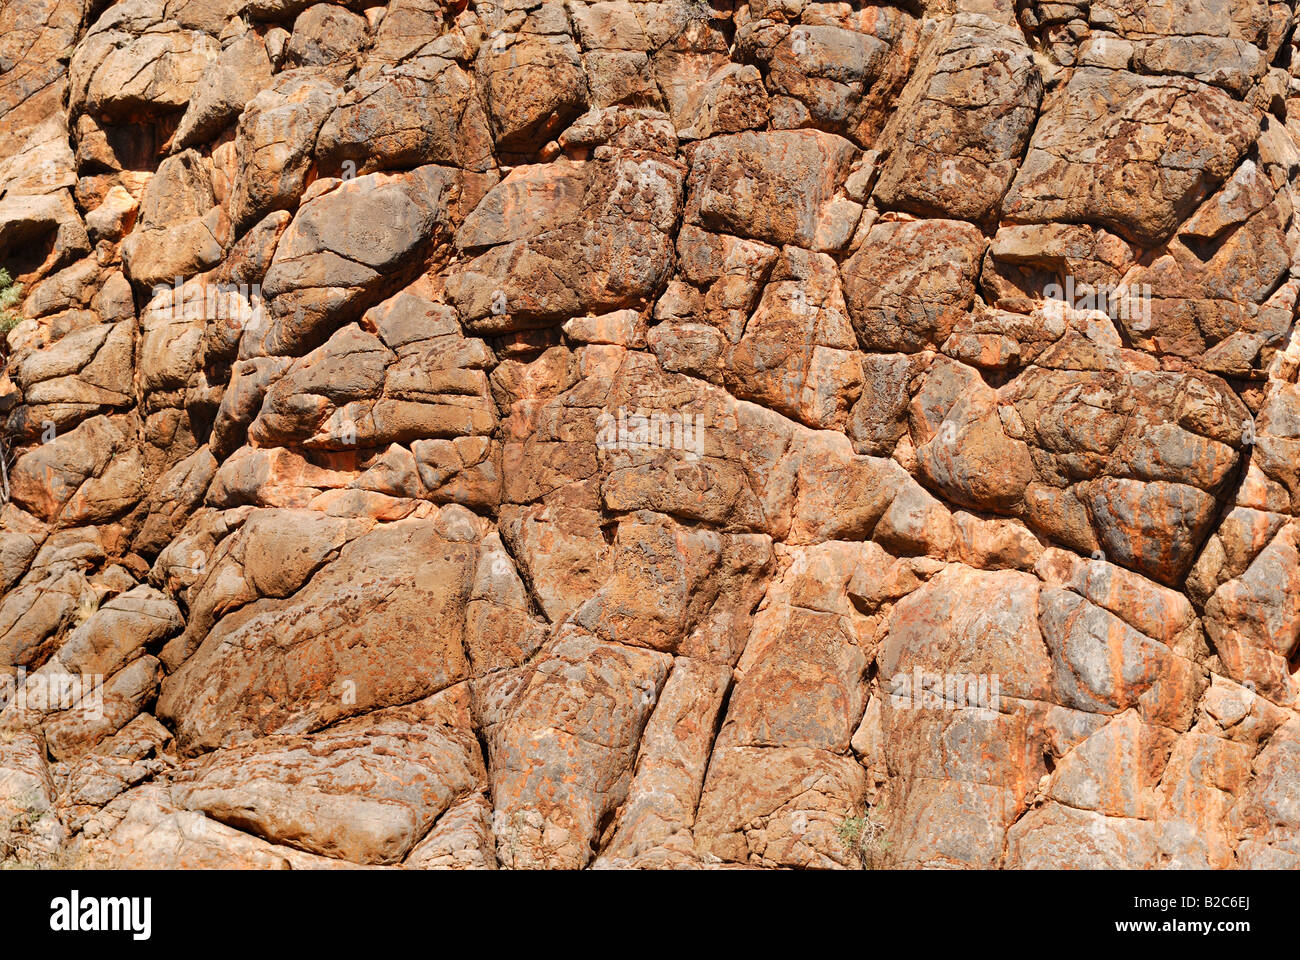 Surface structure of Corroboree Rock, East Macdonnell Ranges, Australia - Stock Image